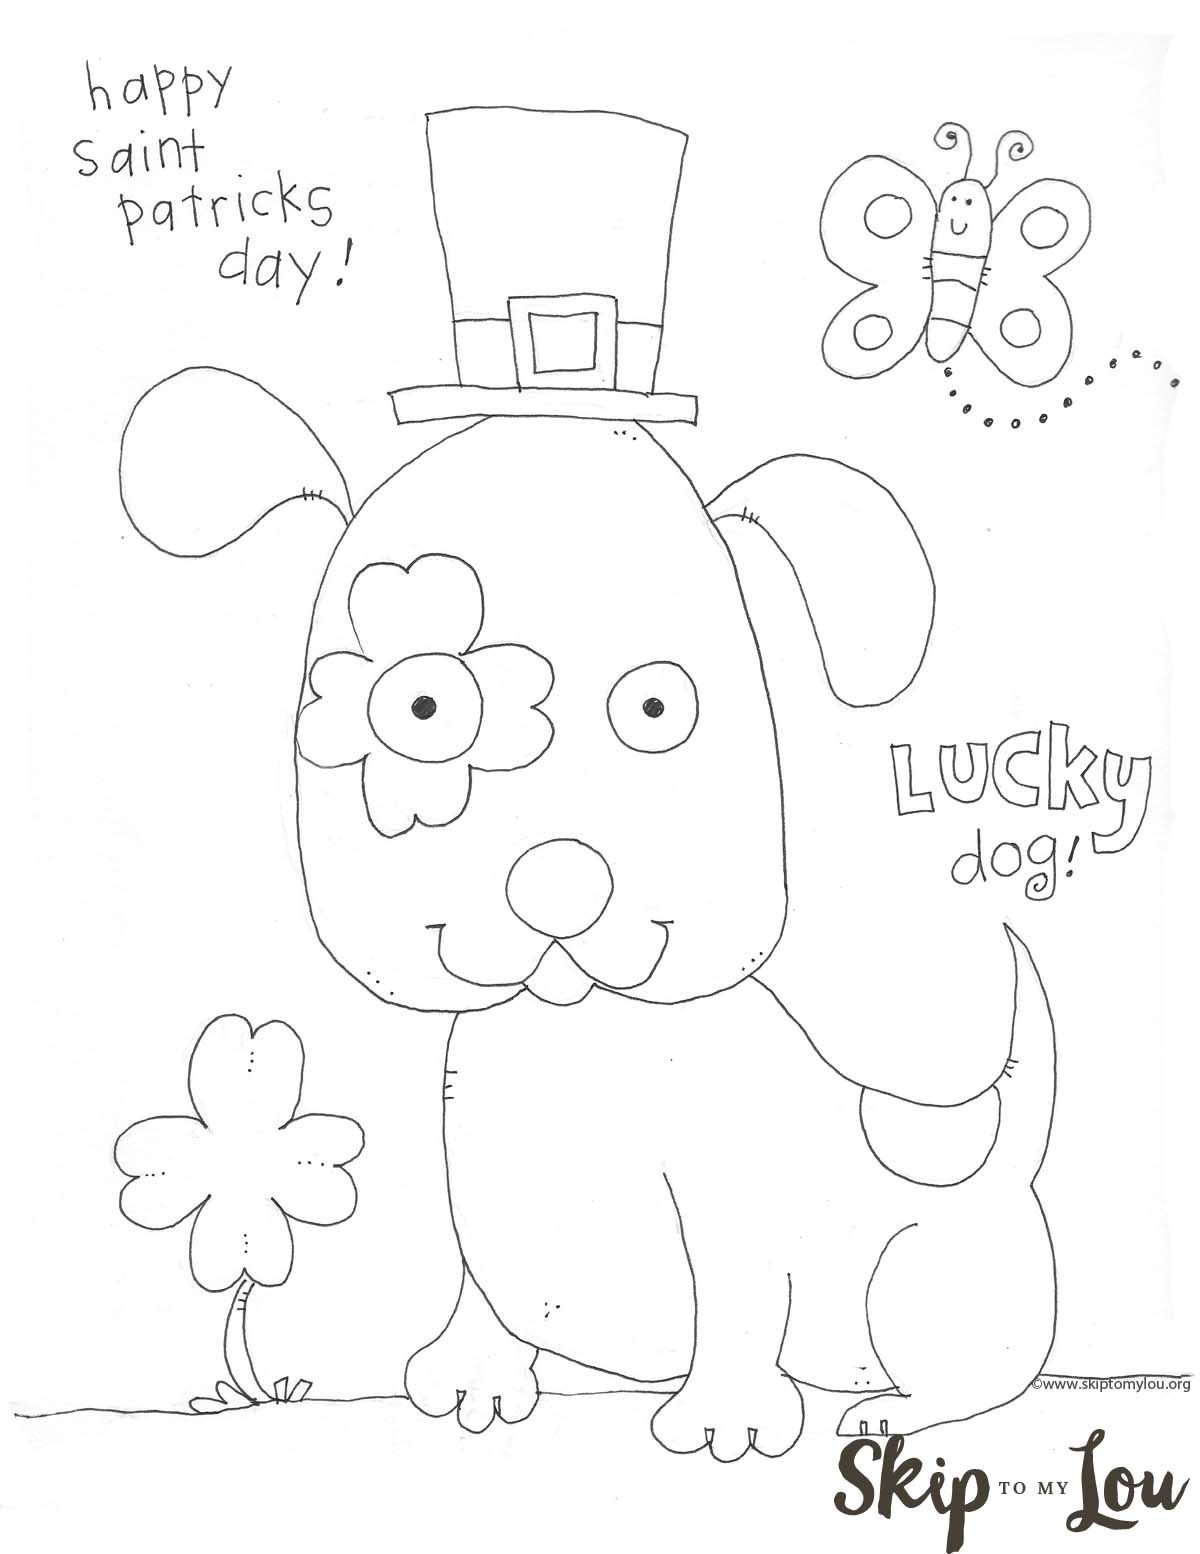 St. Patrick's Day Coloring Page preschool free printable